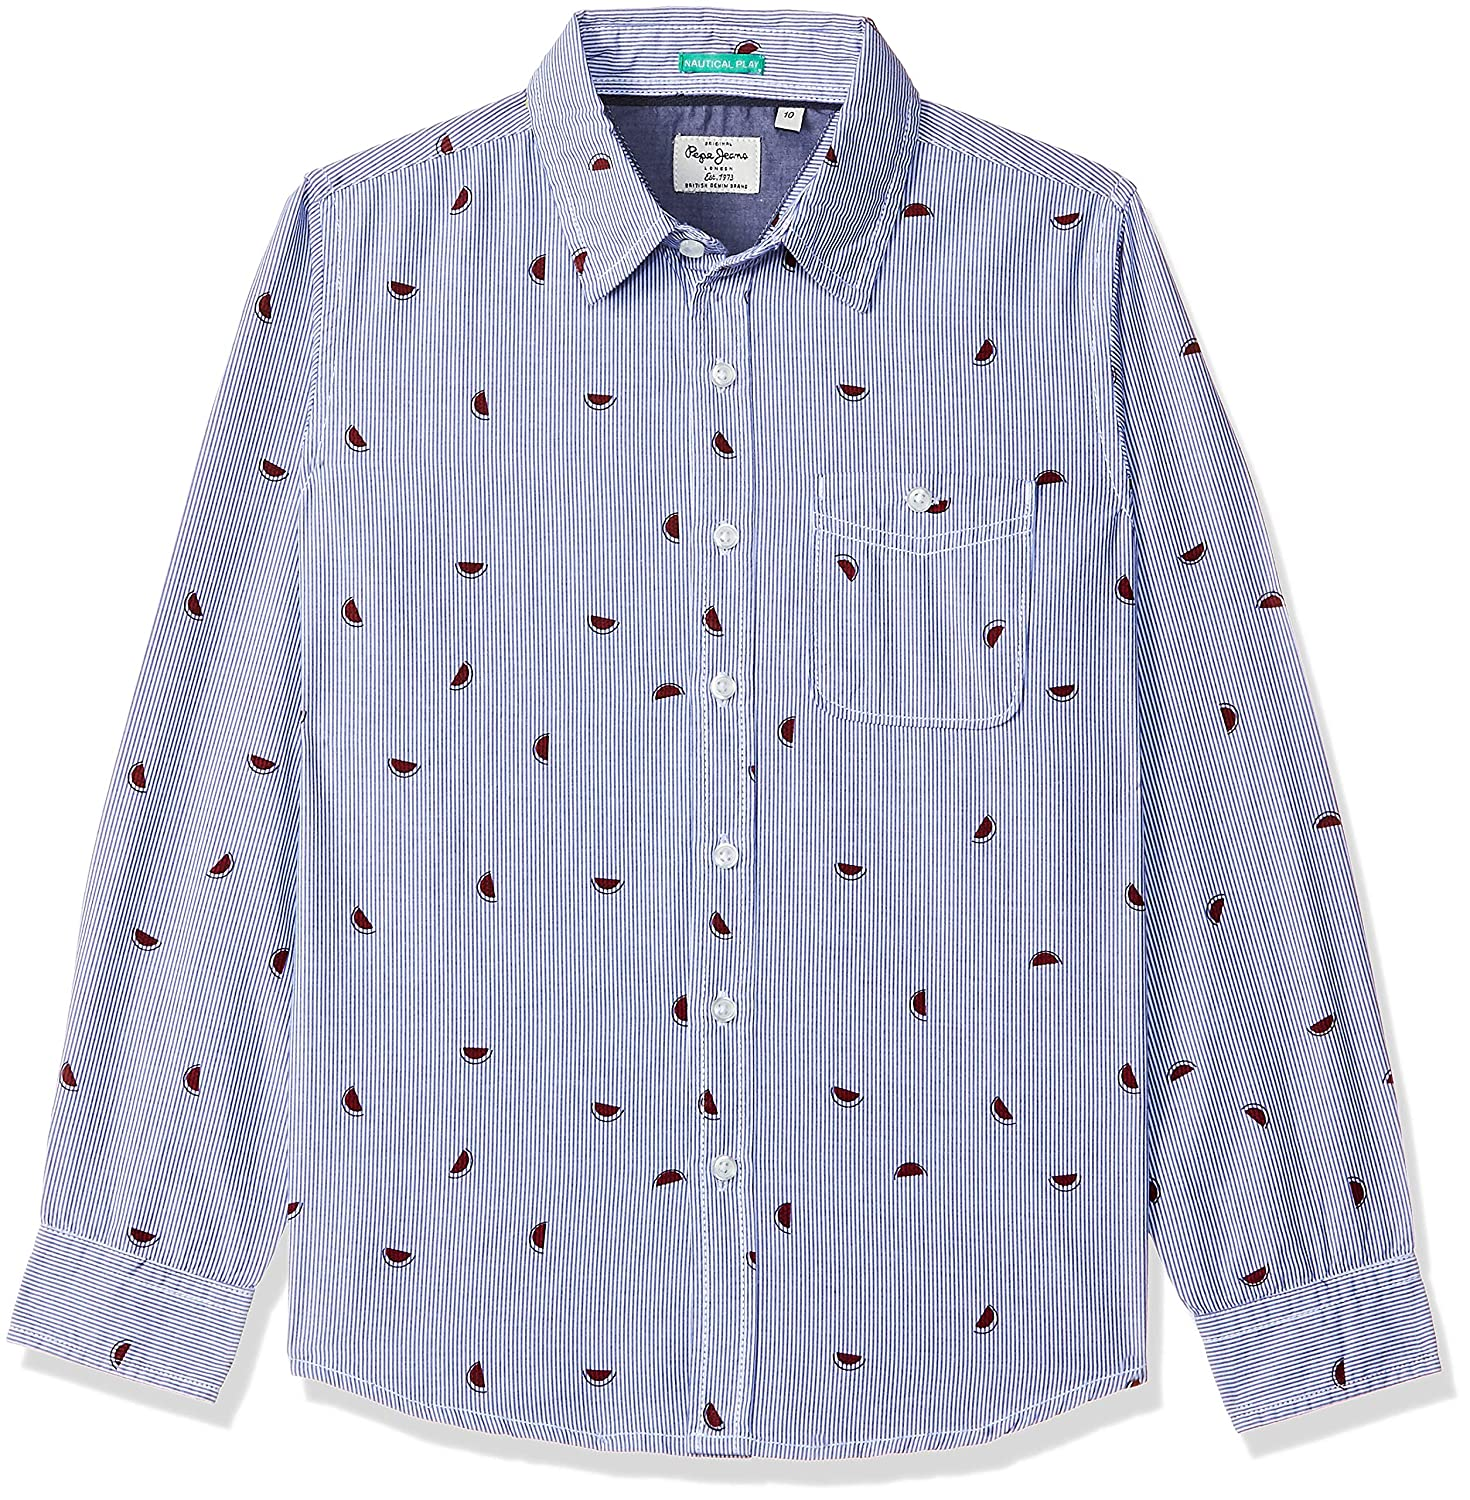 Pepe Jeans Kids Boys Shirt: Amazon.in: Clothing & Accessories